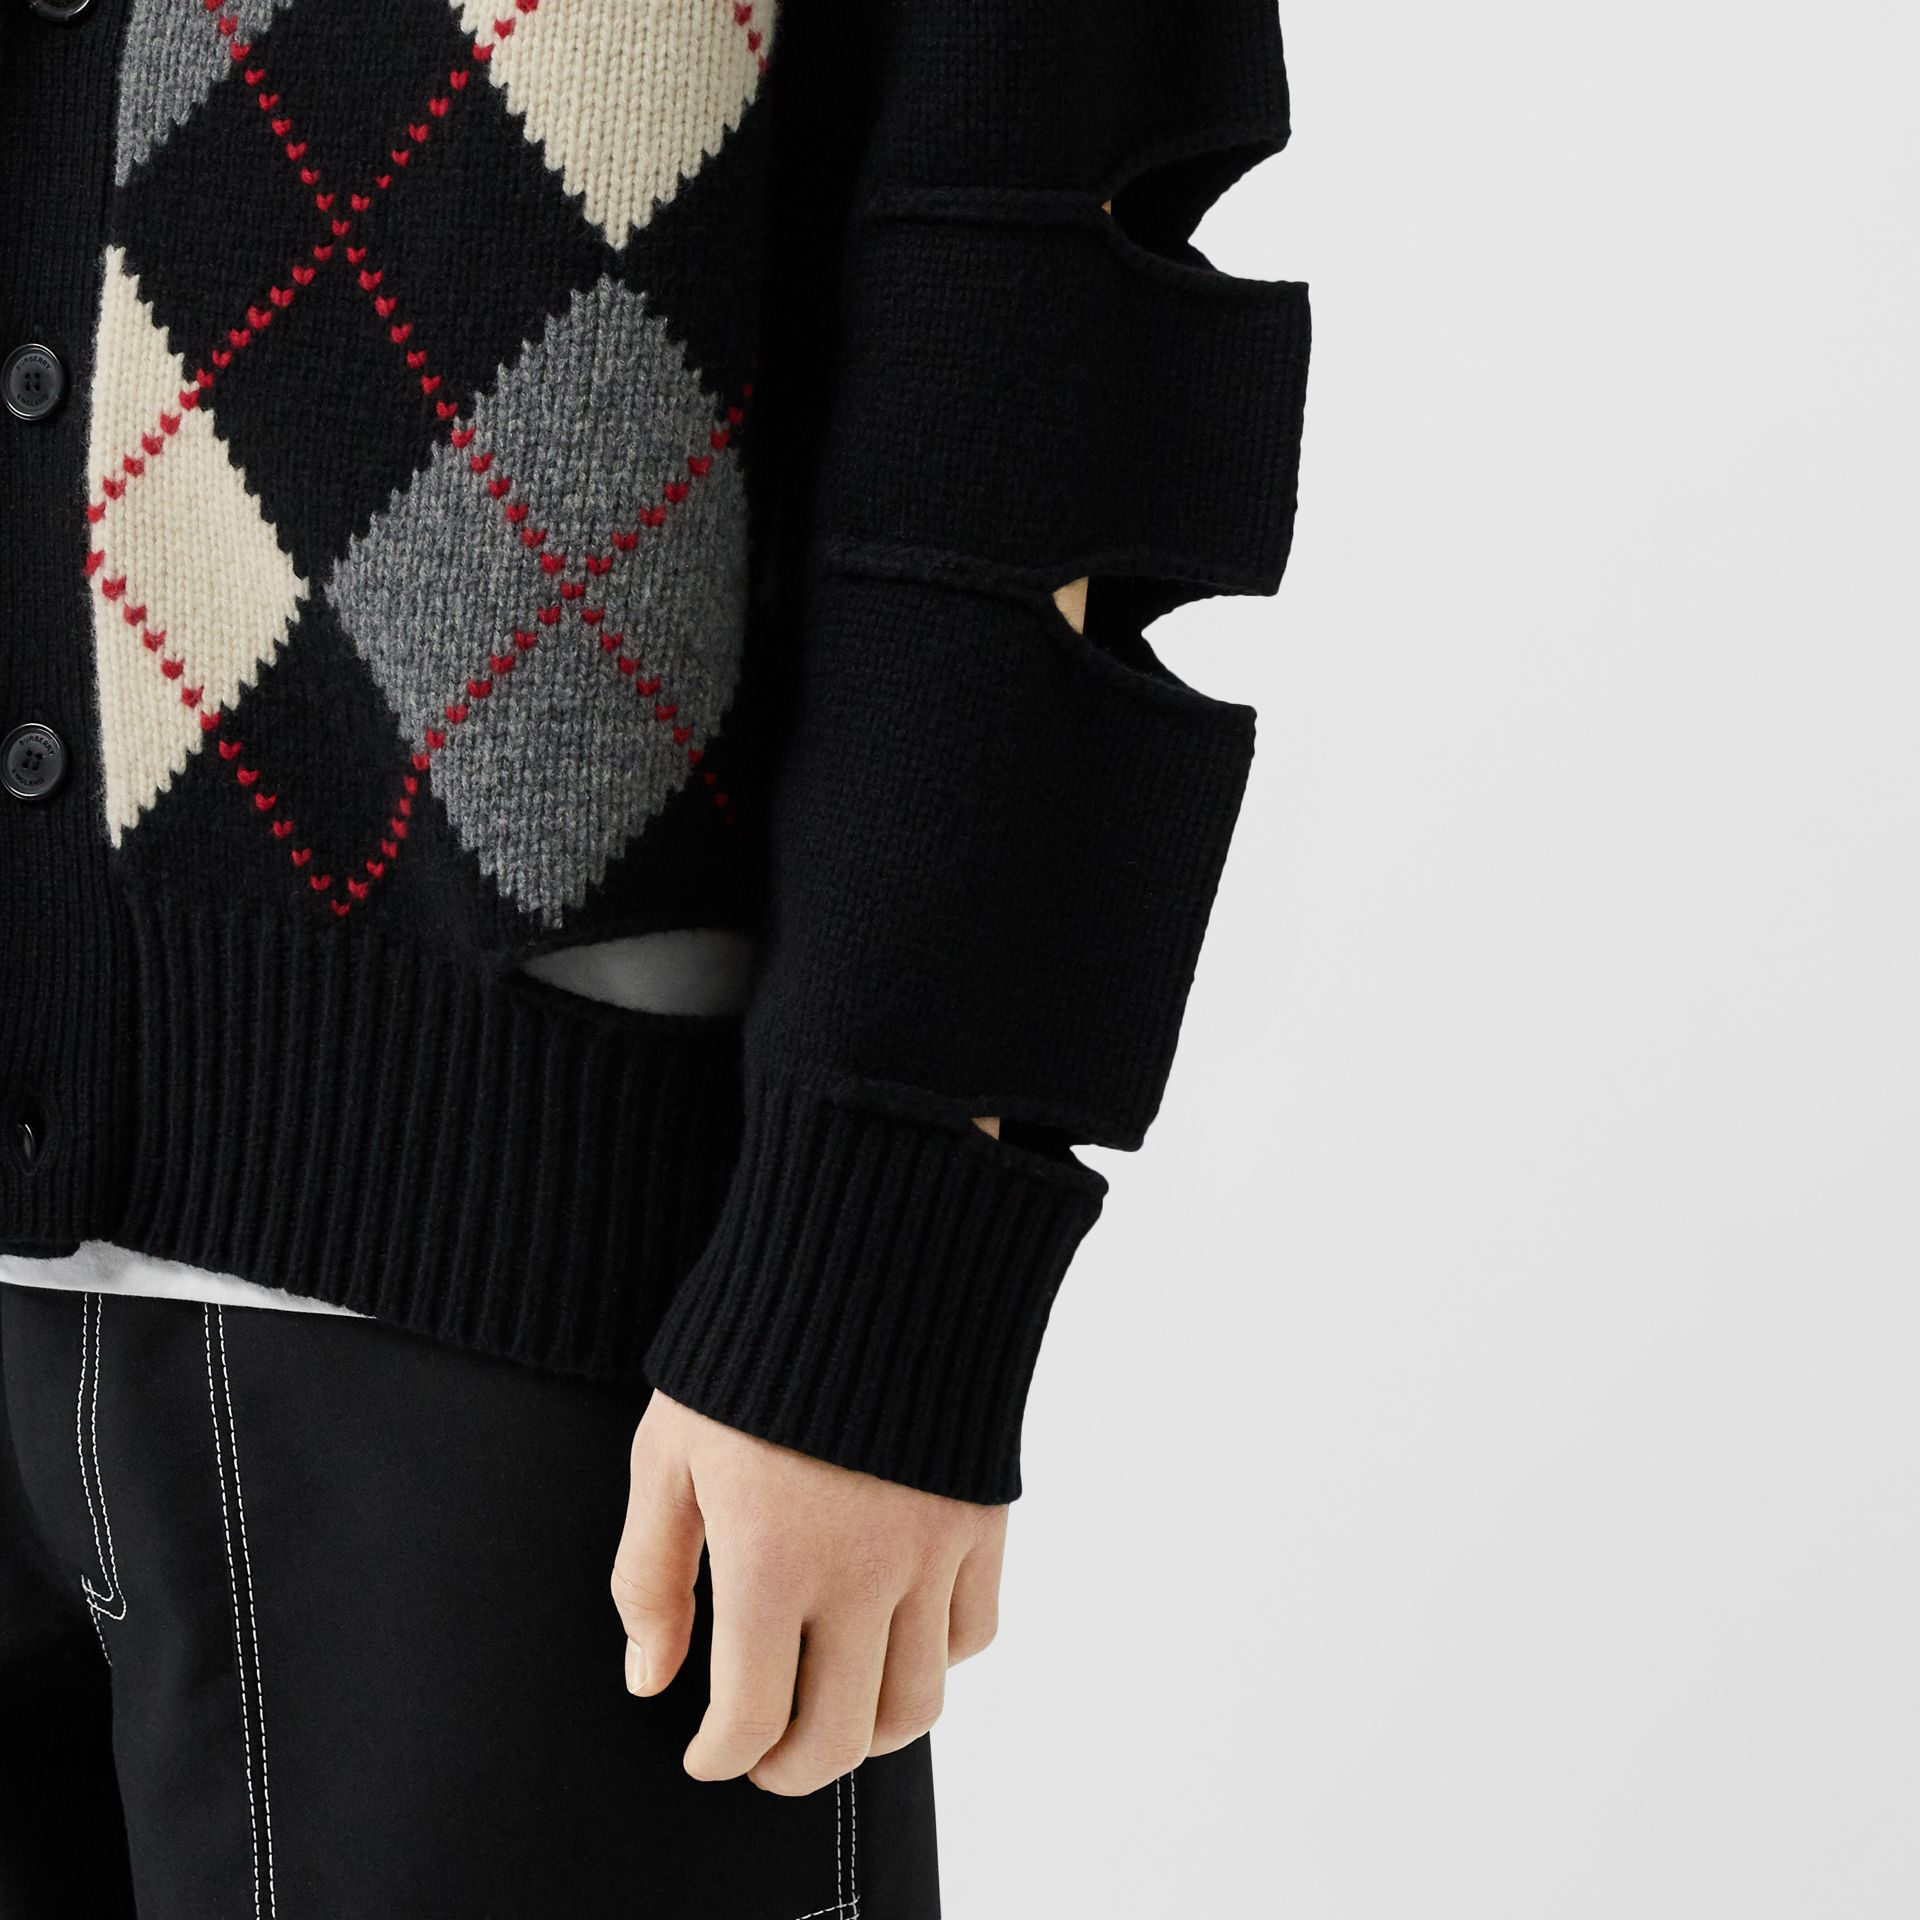 Cut-out Detail Merino Wool Cashmere Cardigan in Black - Men | Burberry - gallery image 4